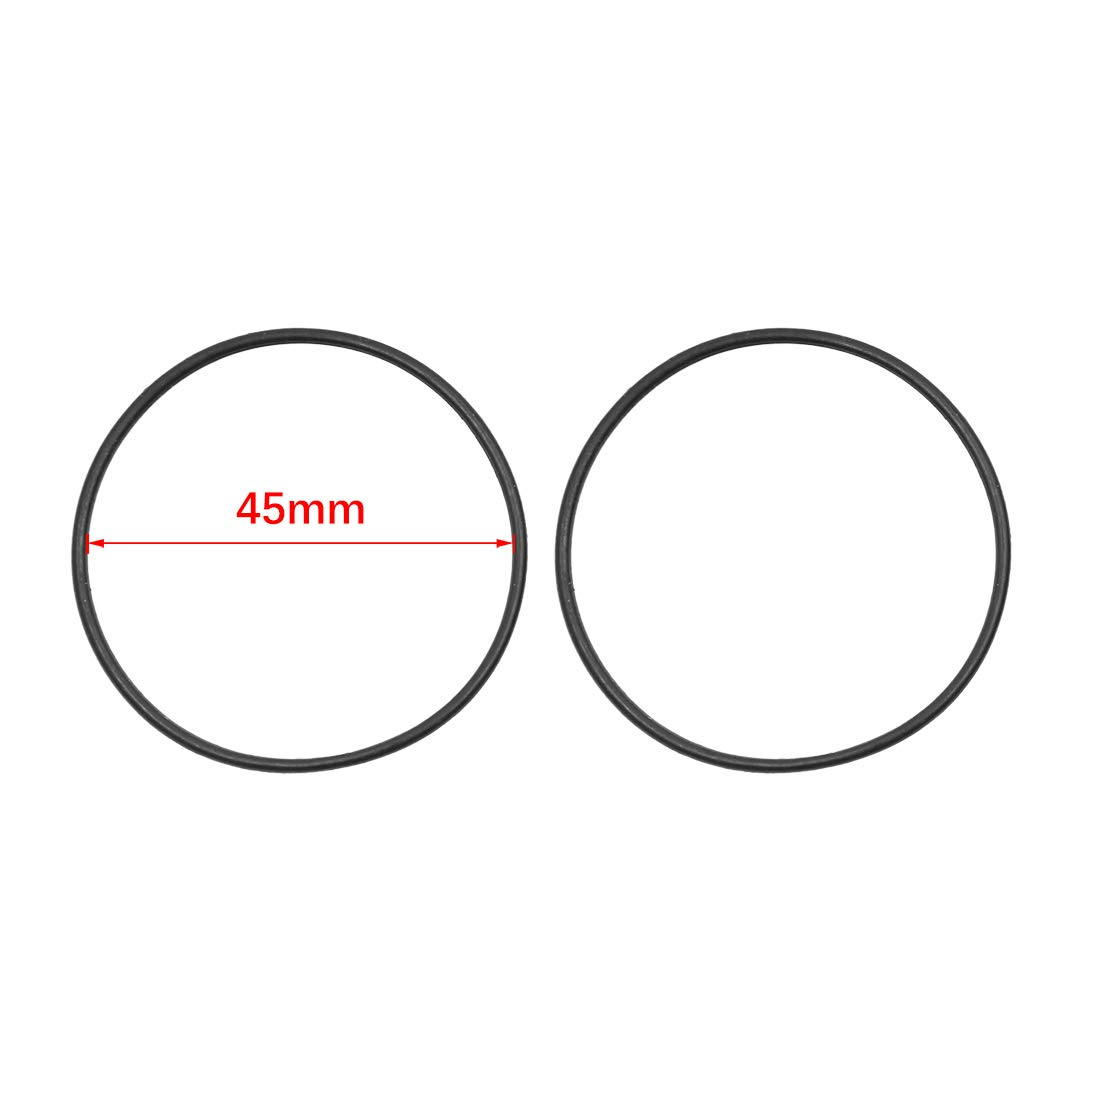 X AUTOHAUX Black NBR O-Ring Seal Gasket Washer for Automotive Car 45 x 1.8mm 20pcs